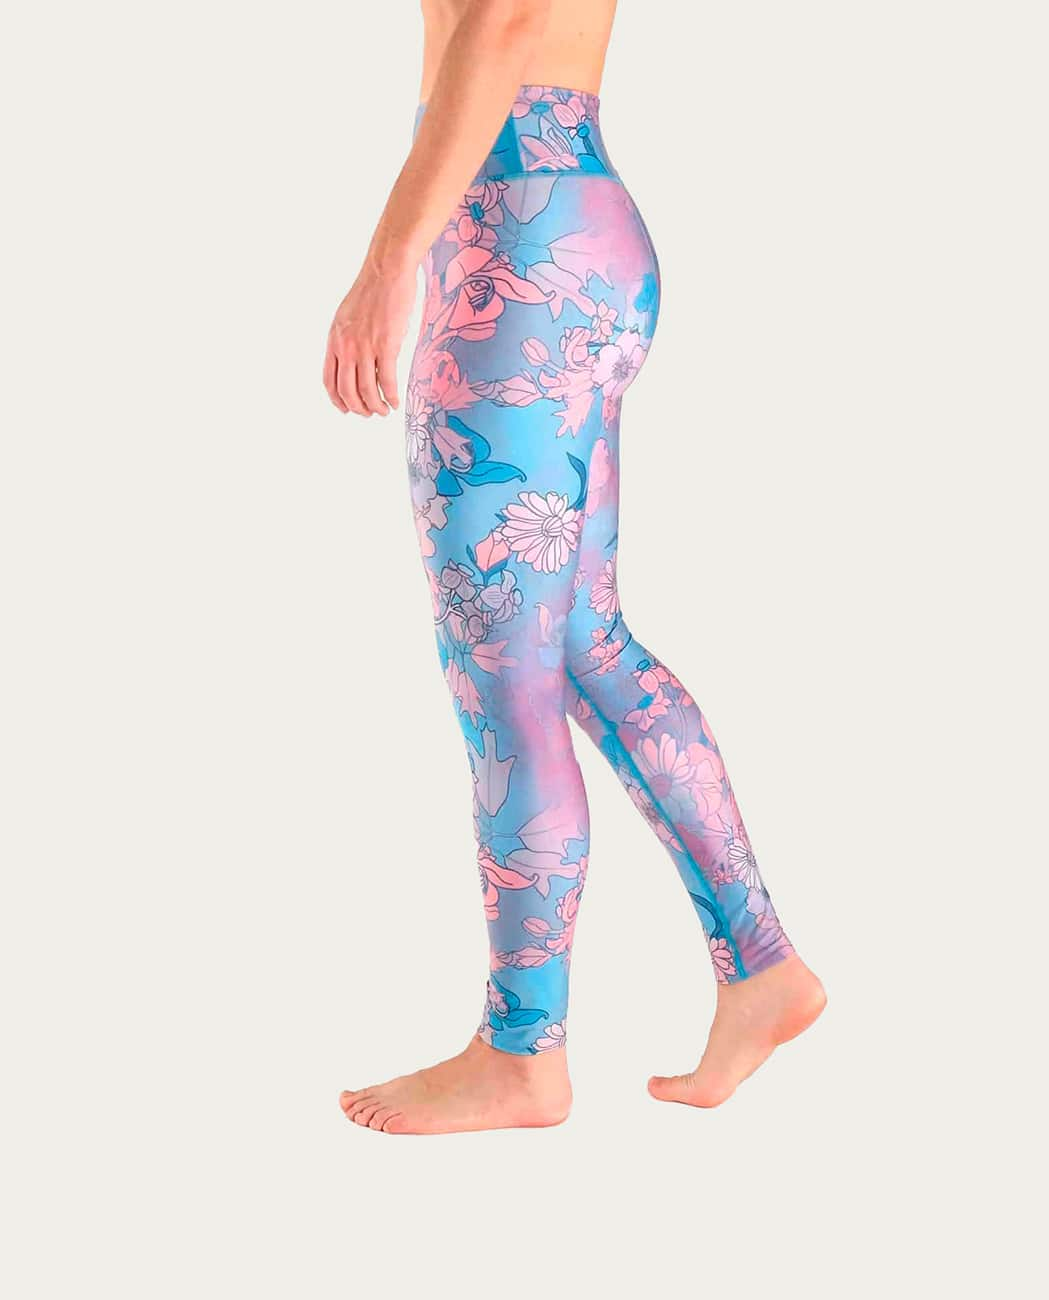 Shanti Yoga Leggings Komoshi Left